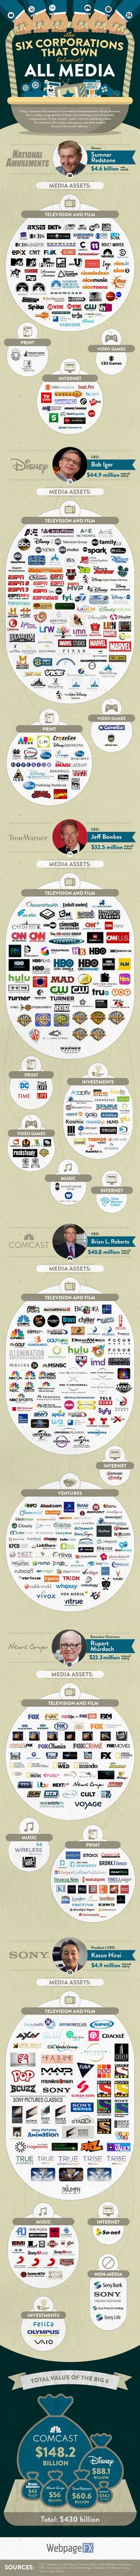 The 6 Companies That Own (almost) All Media #Infographic #Business